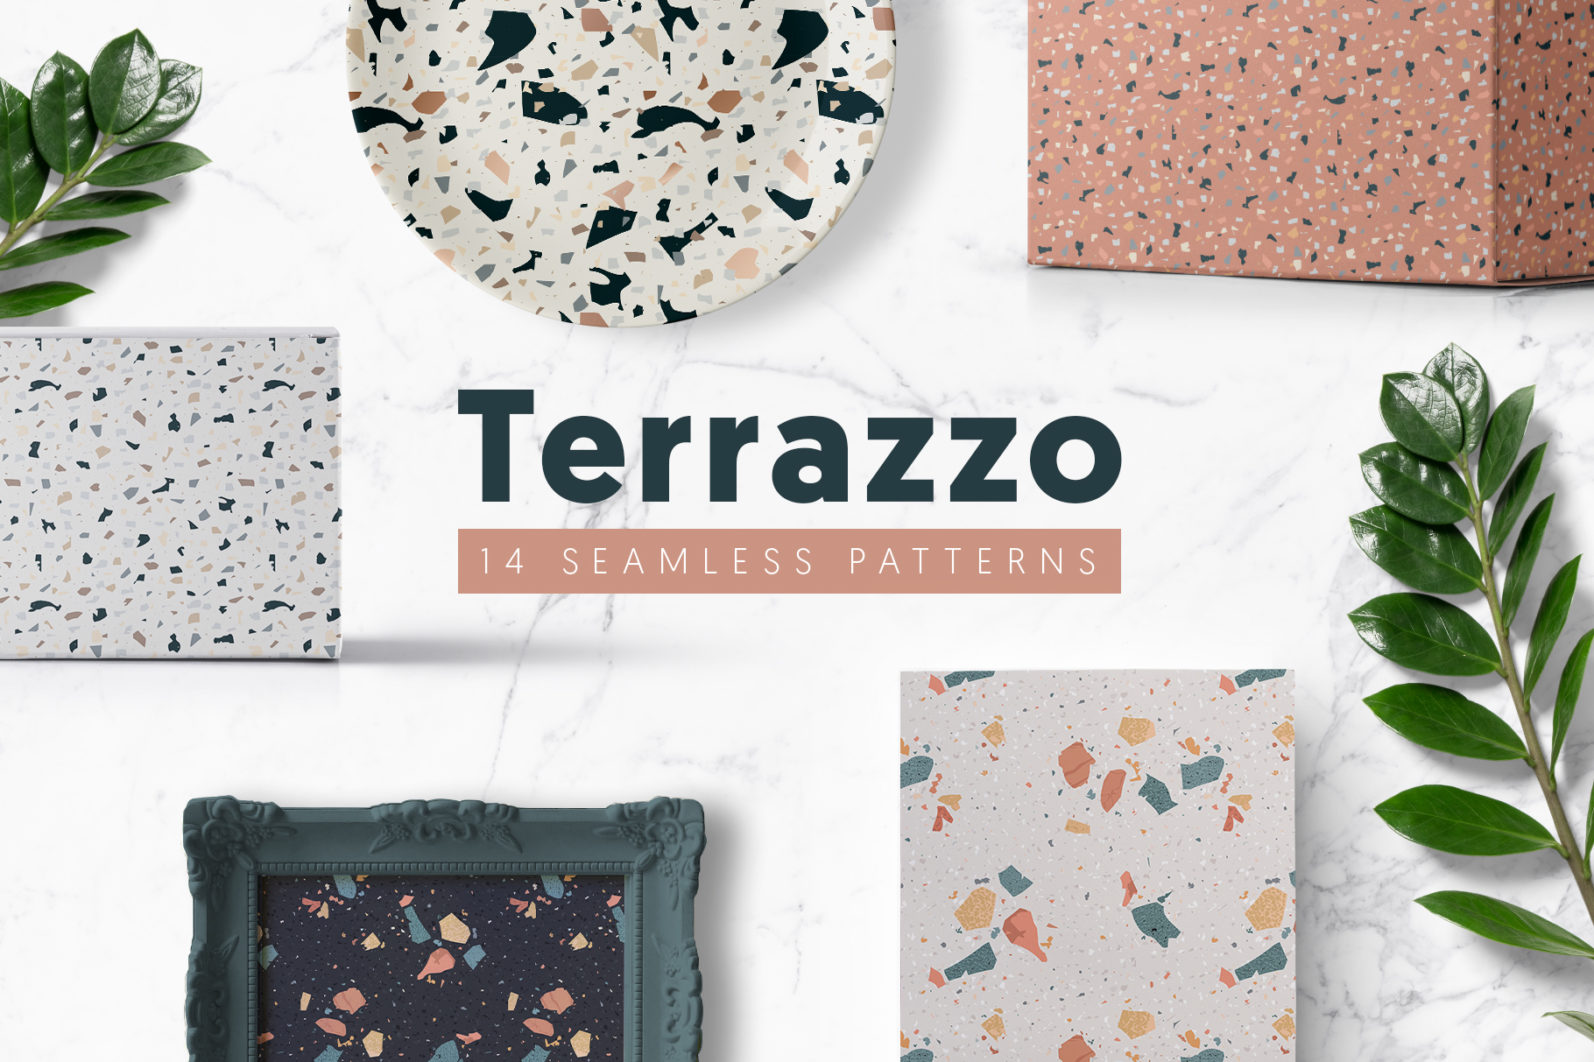 Terrazzo Seamless Patterns - preview 16 -